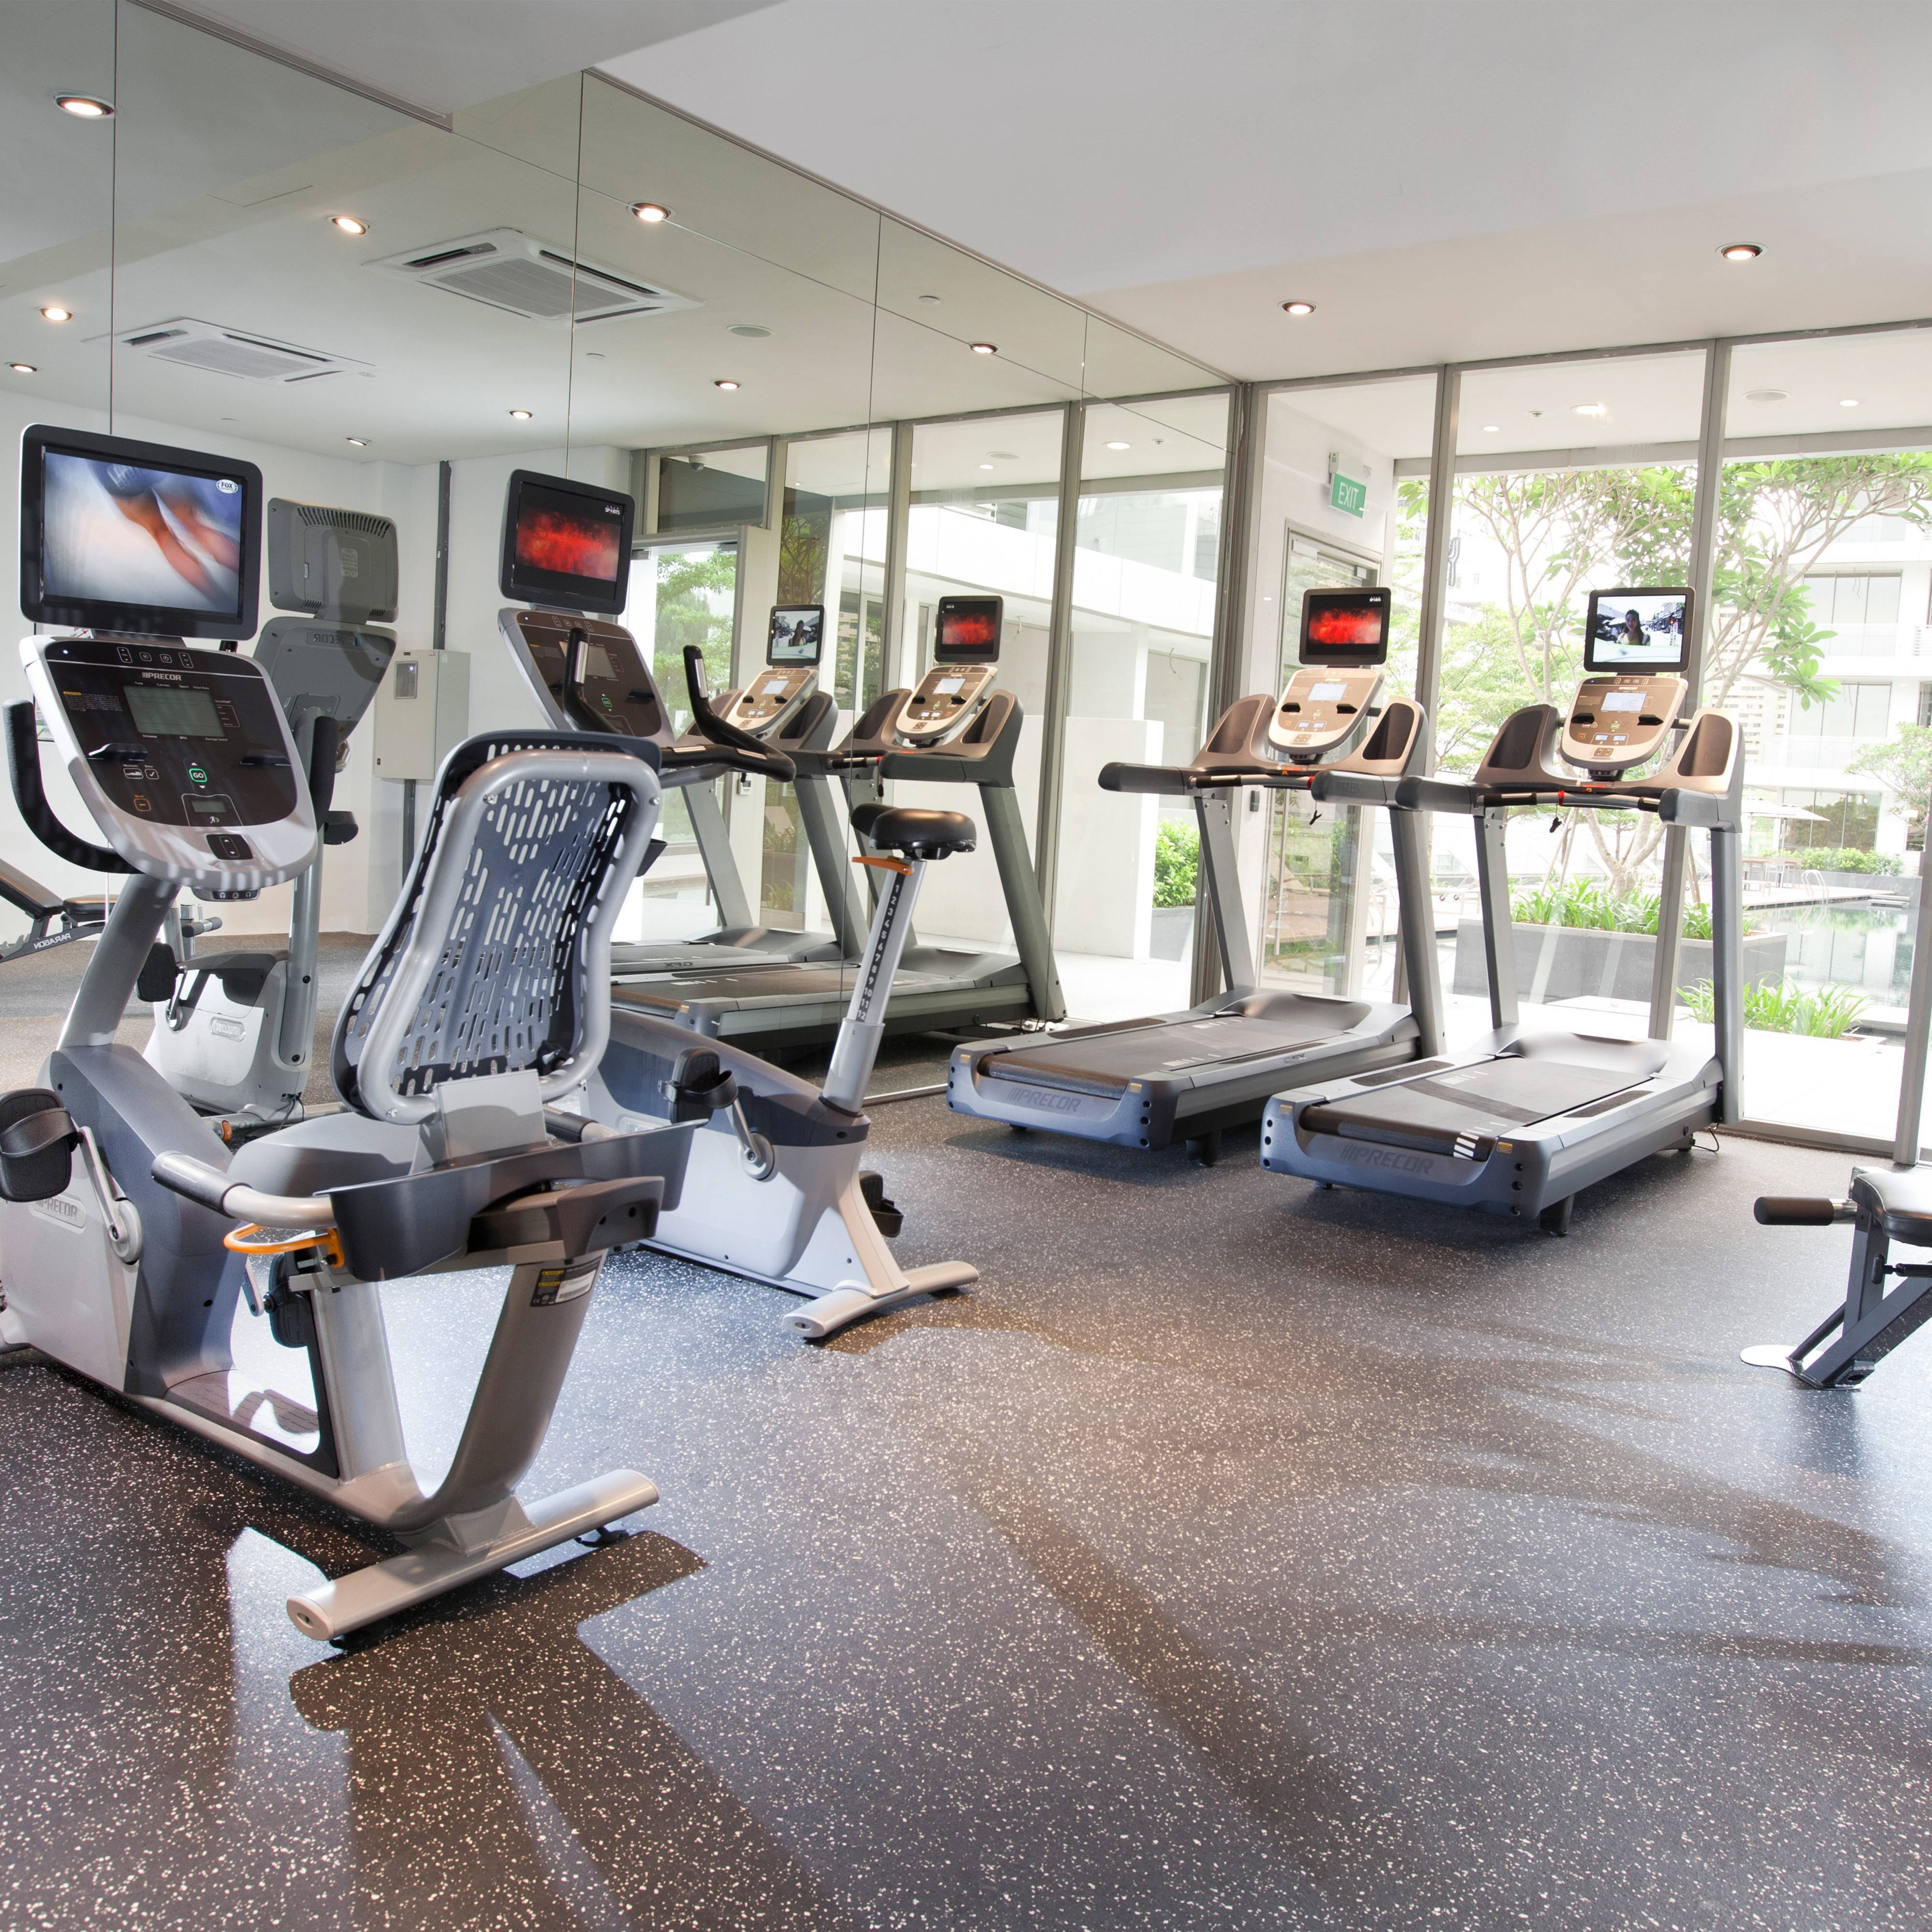 Fully equipped gymnasium - Unwind and recharge at our gymnasium